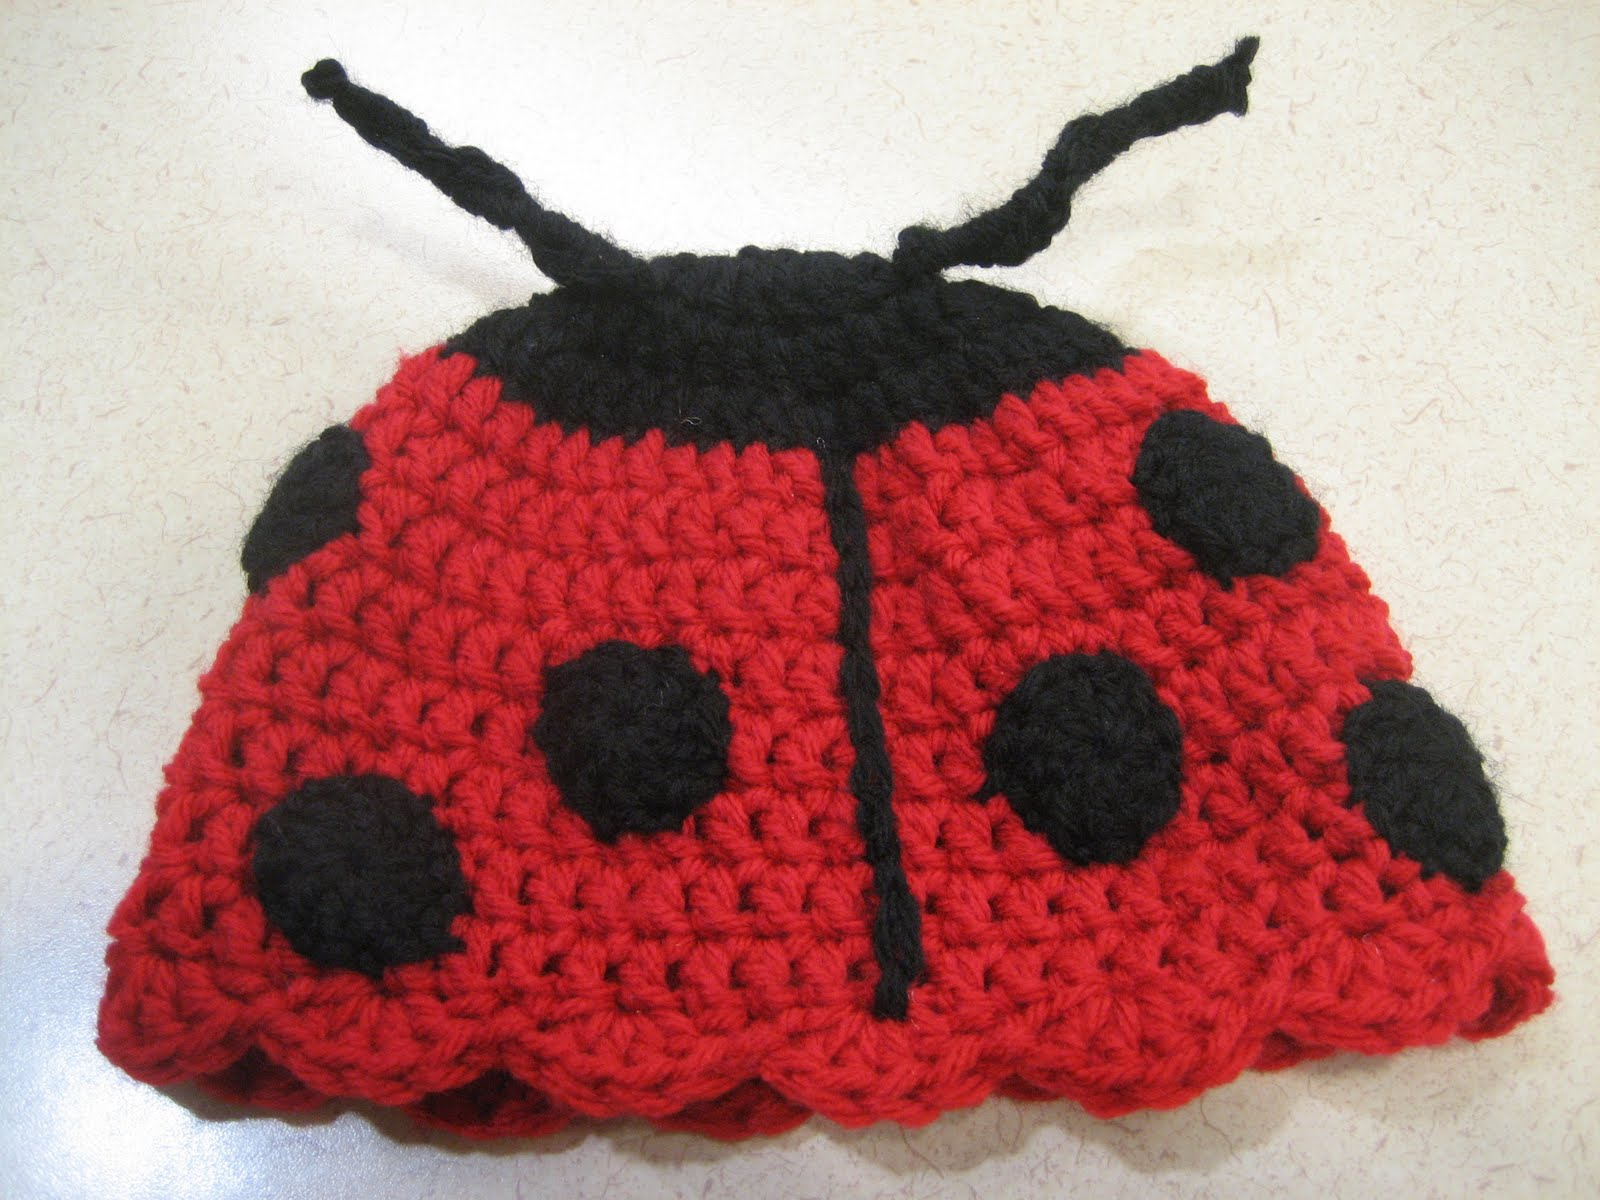 Cats-Rockin-Crochet Fibre Artist.: Crochet Ladybug, Beret and